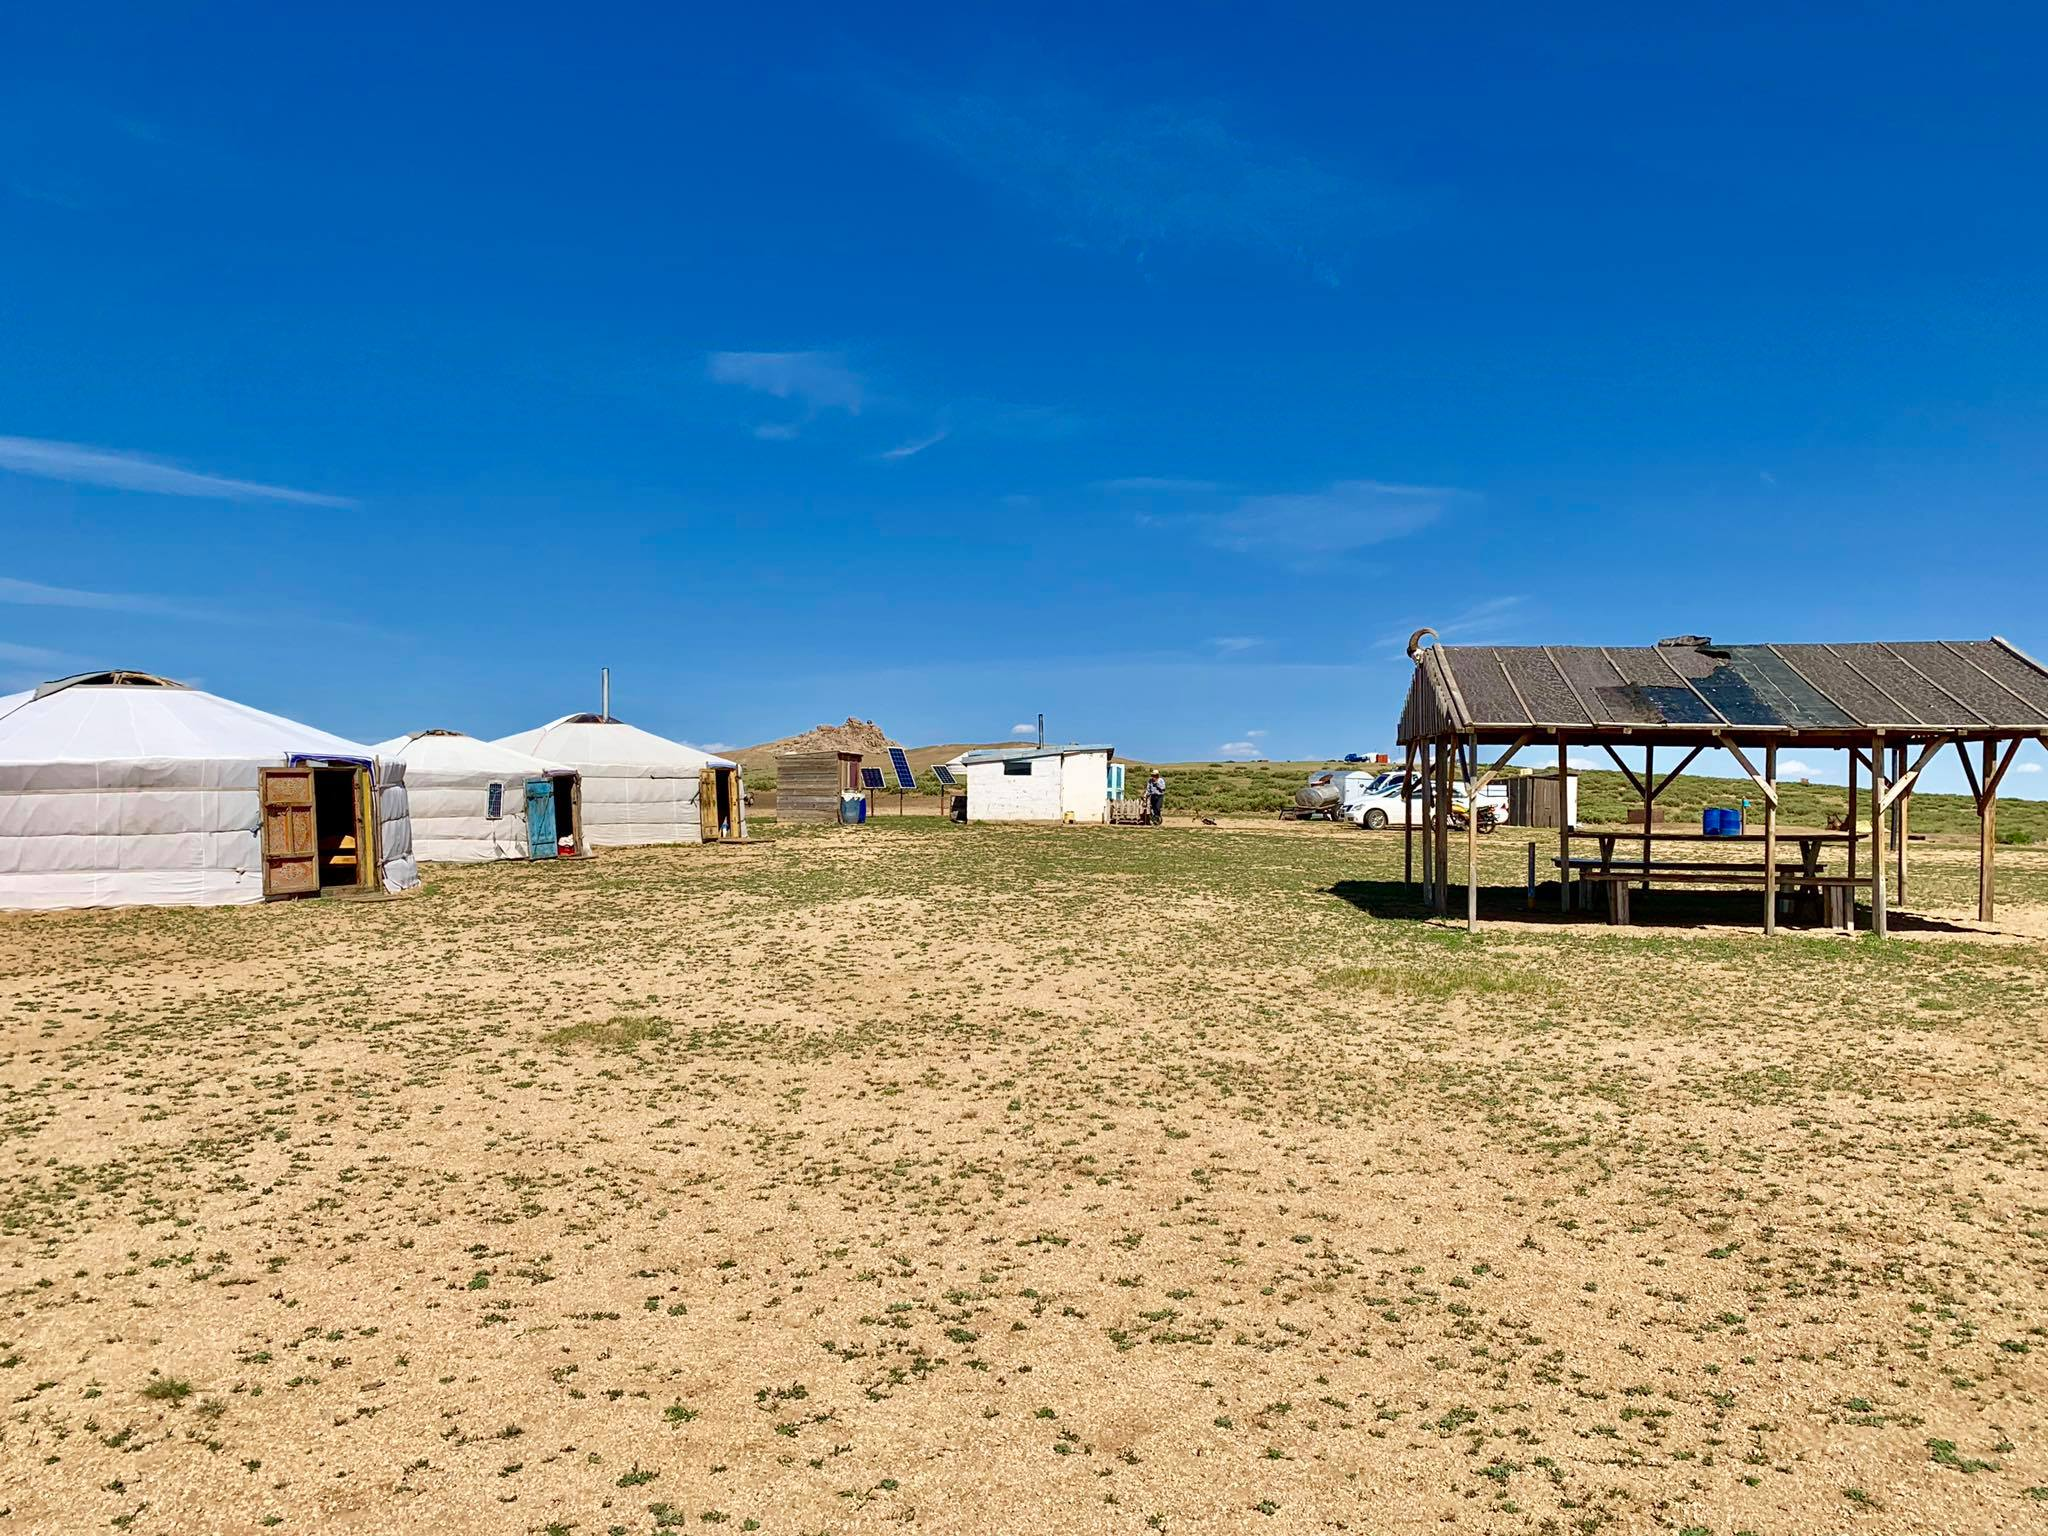 Kach Solo Travels in 2019 My place for 3 days here in Mongolia15.jpg